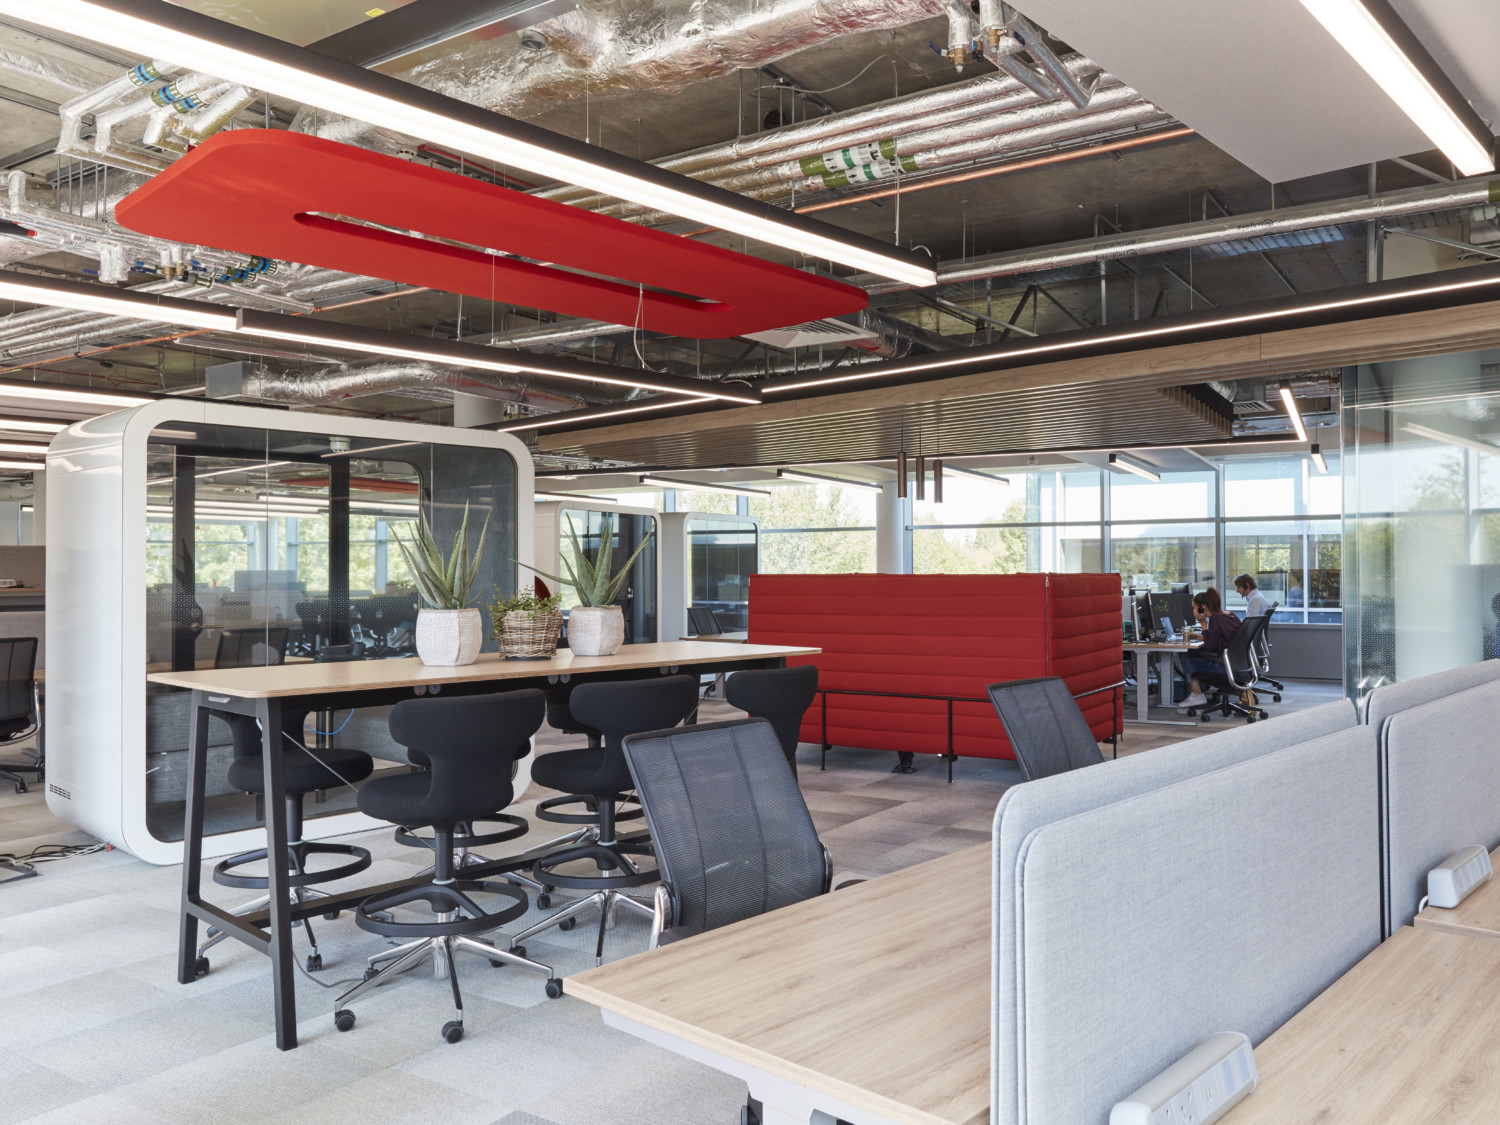 obo puts employees first in latest workplace project